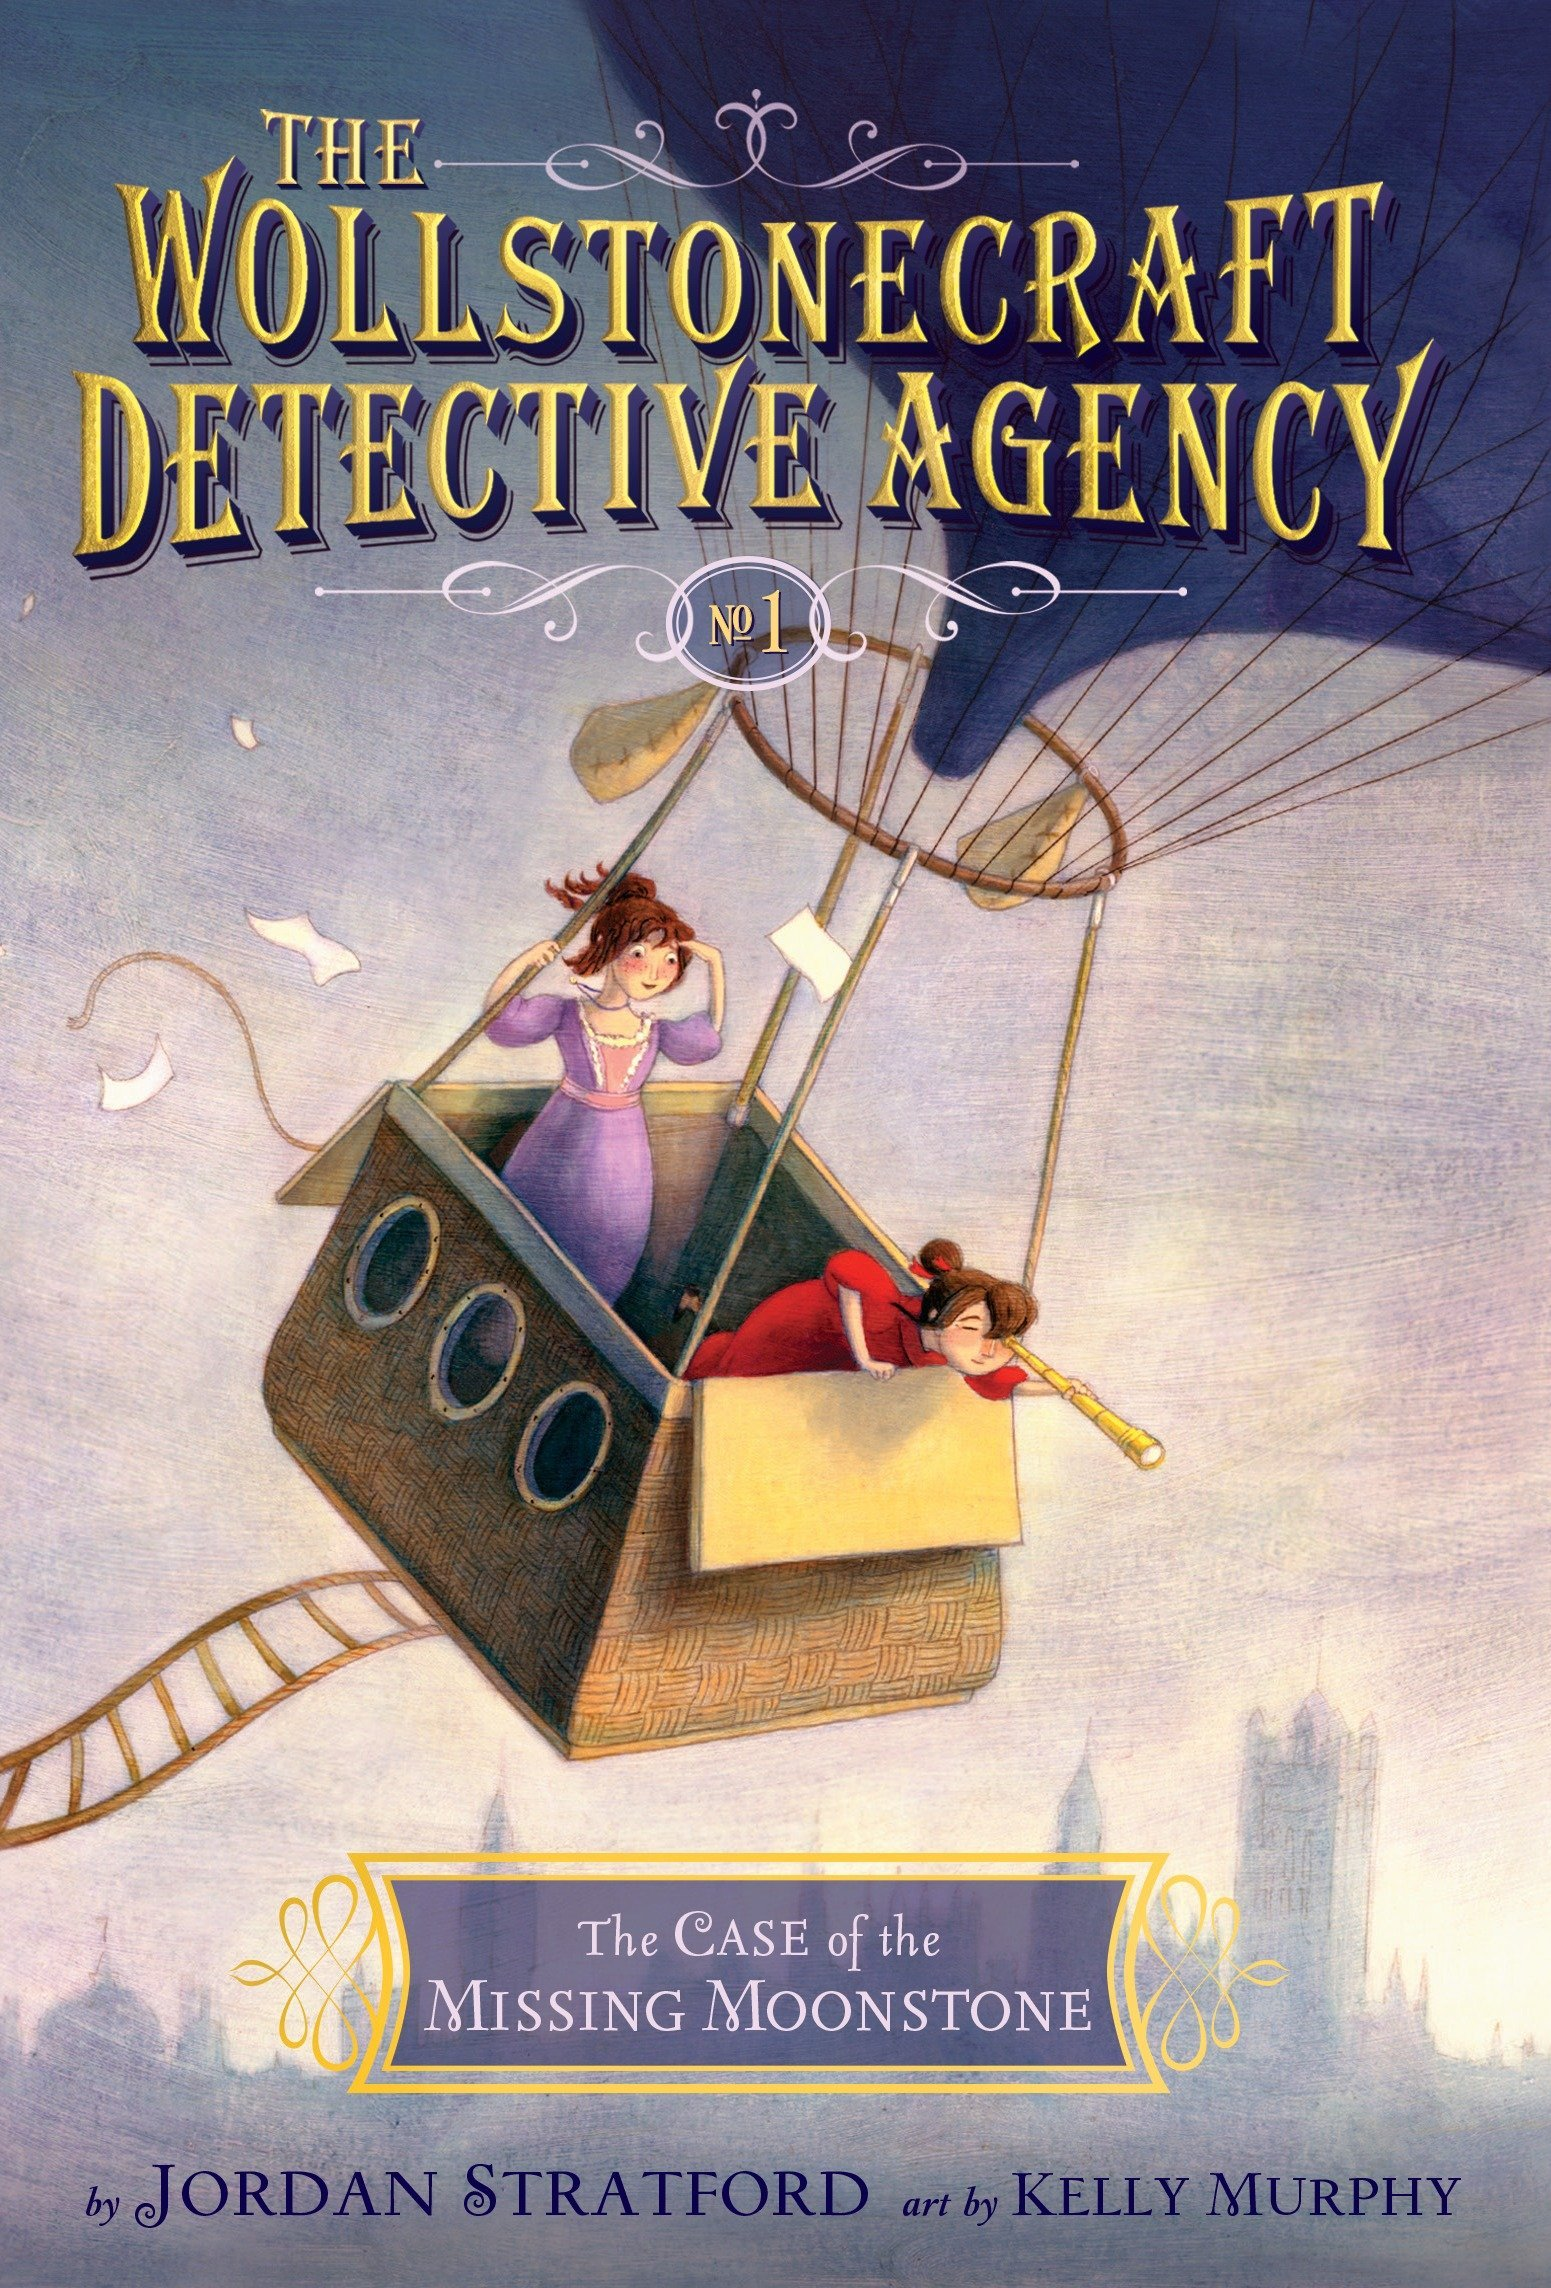 The Case of the Missing Moonstone (The Wollstonecraft Detective Agency, Book 1) pdf